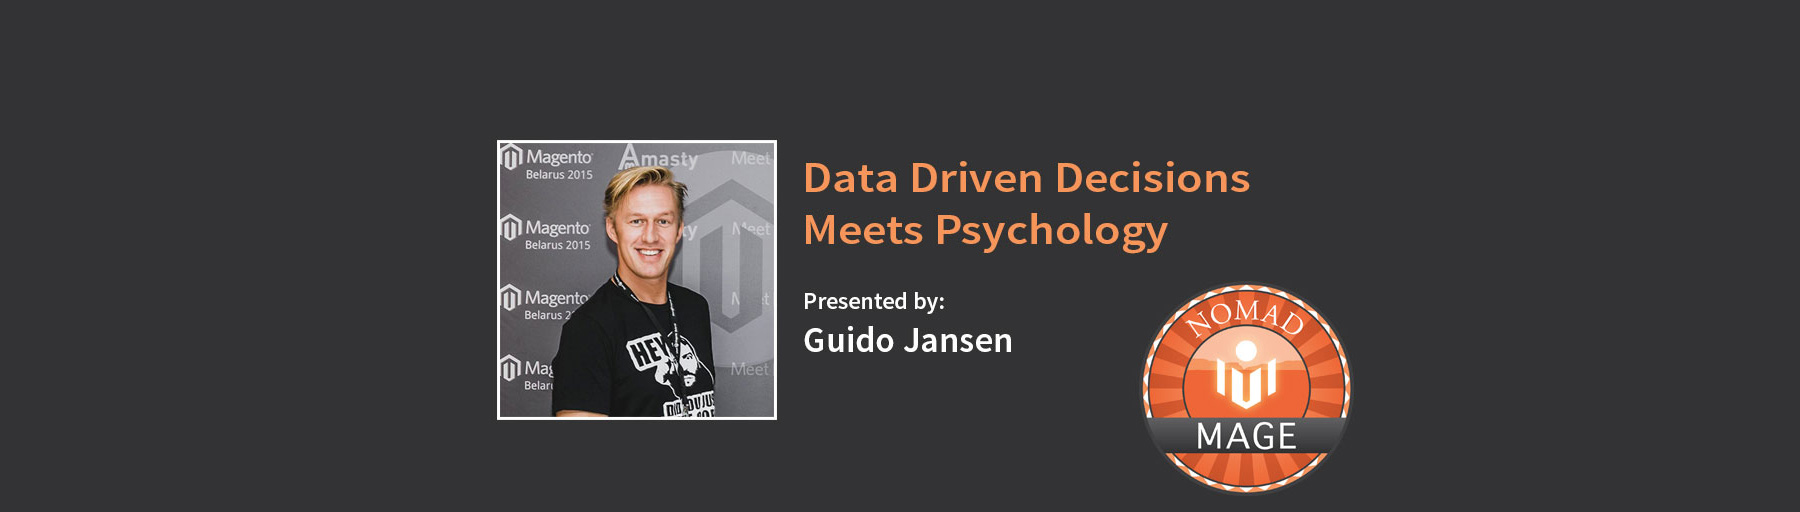 Data Driven Decisions meets Psychology